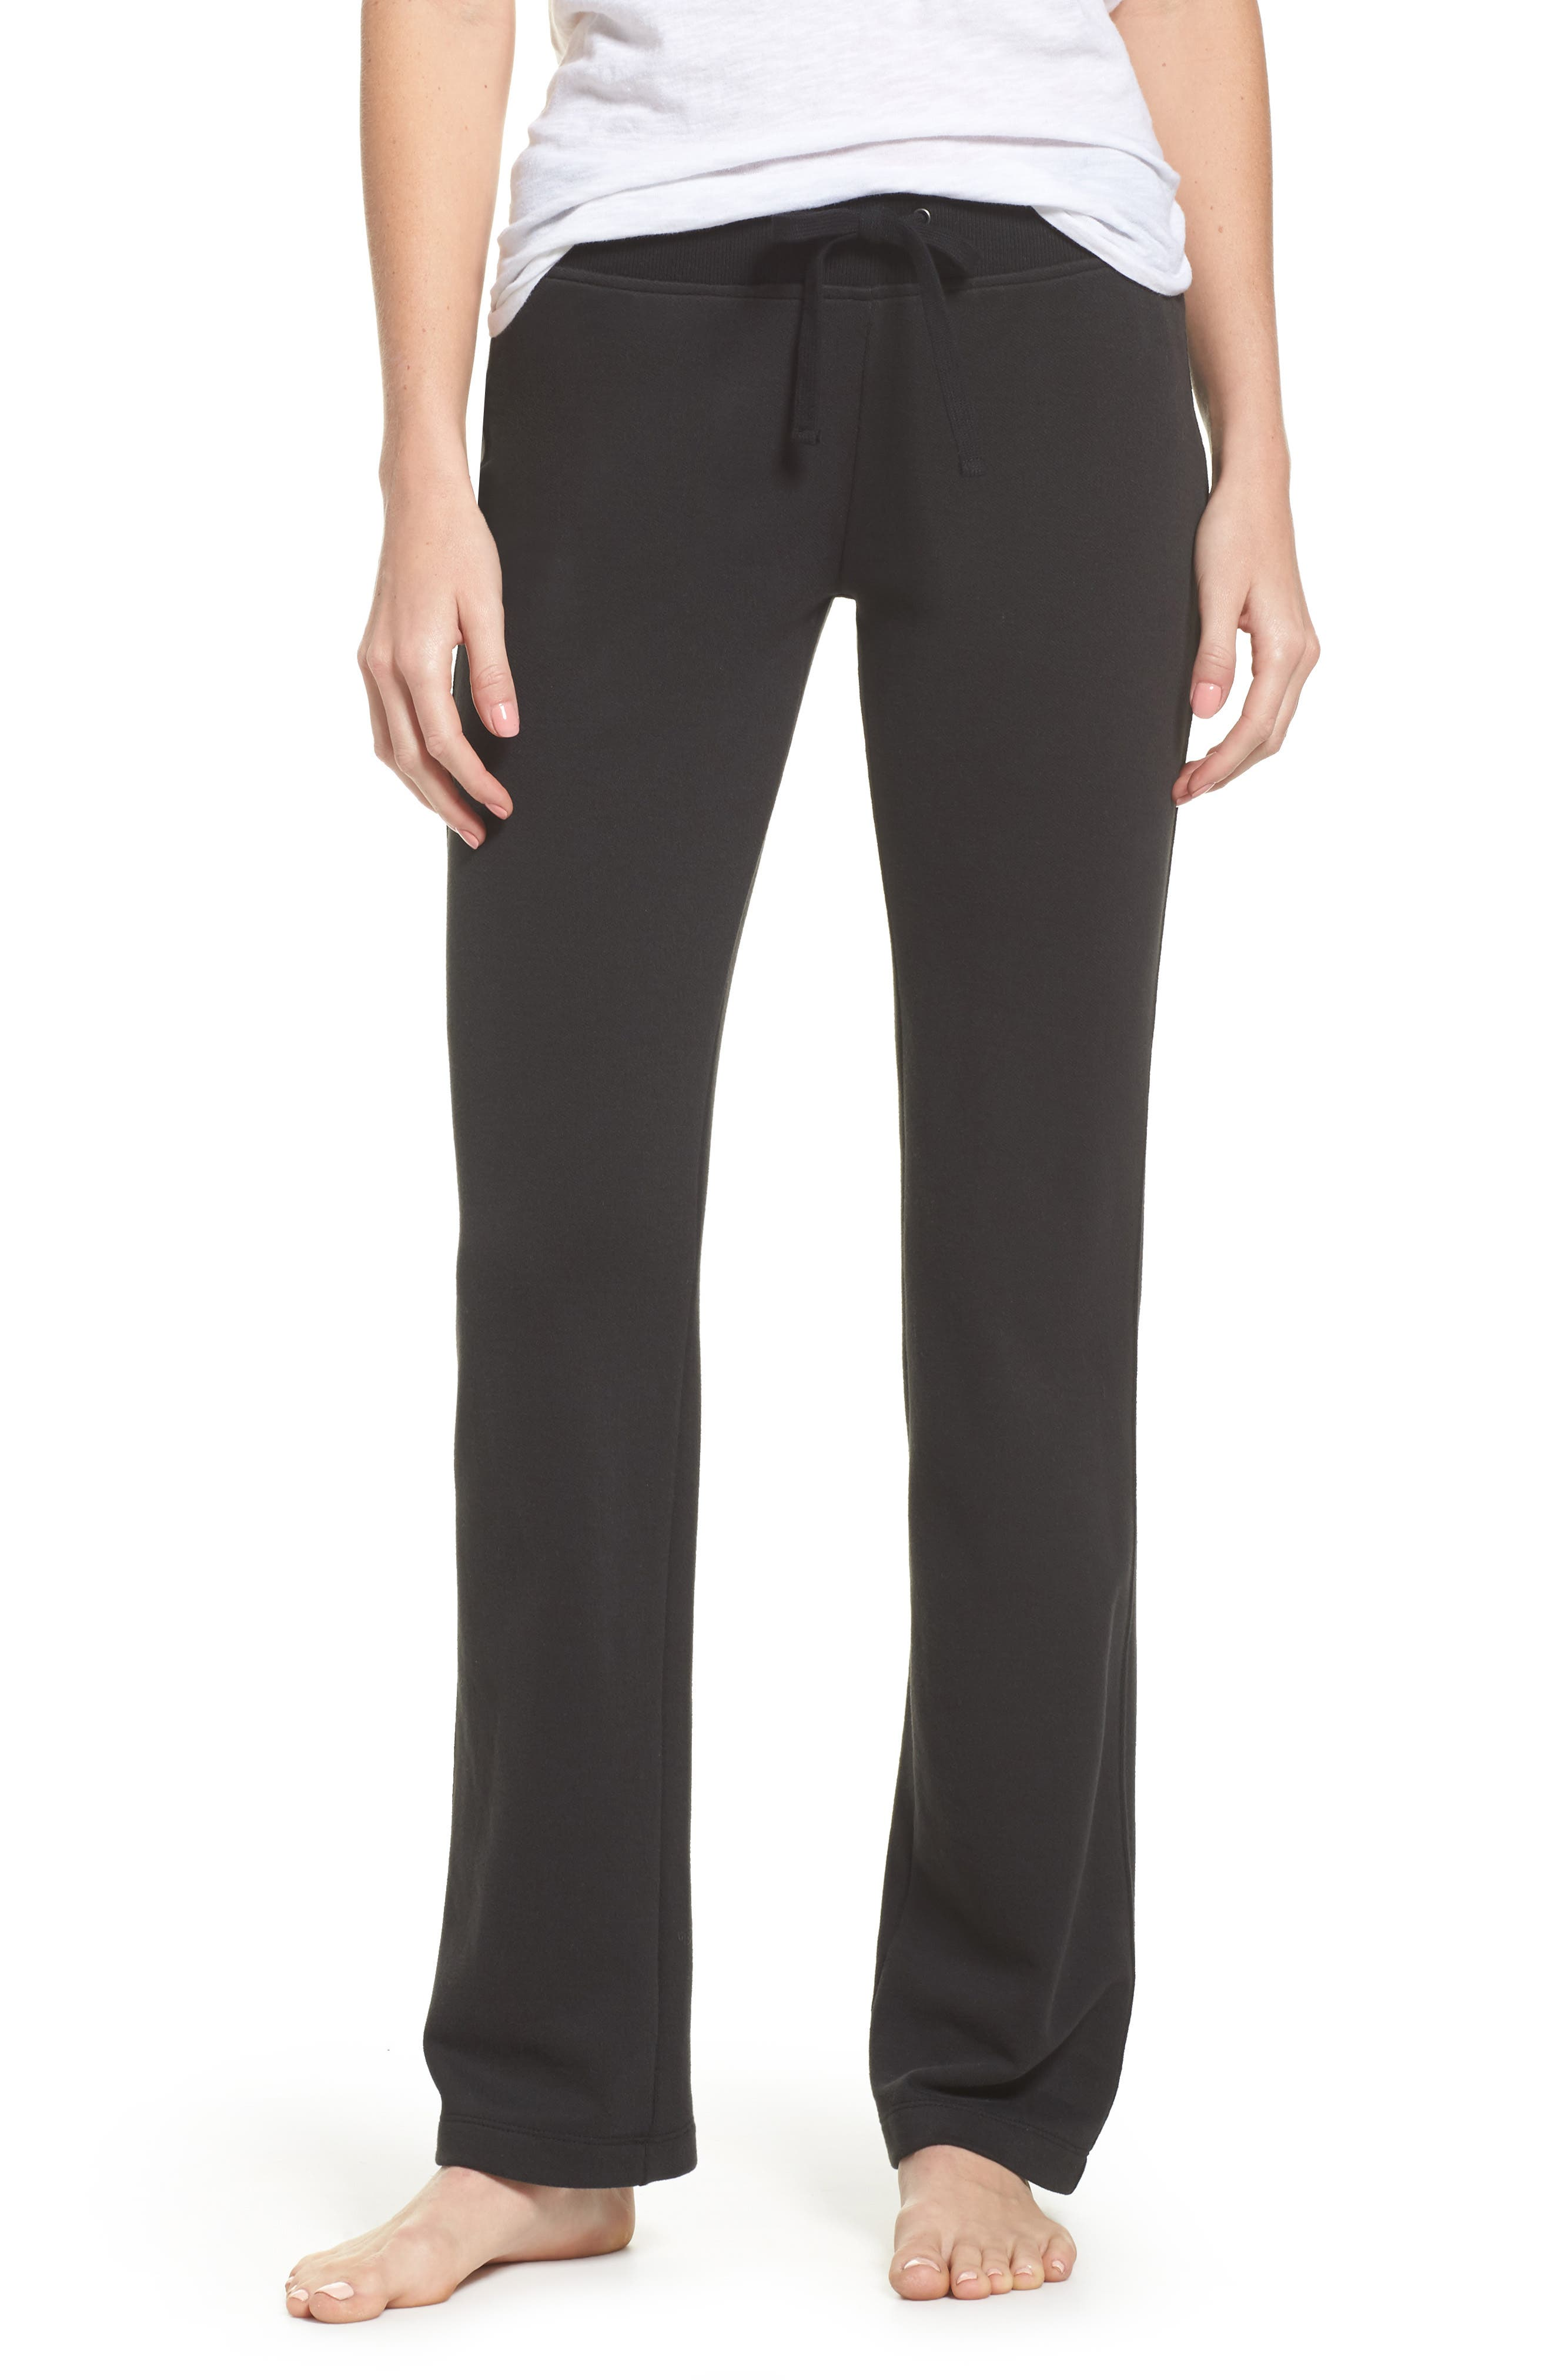 Penny Lounge Pants,                             Main thumbnail 1, color,                             BLACK